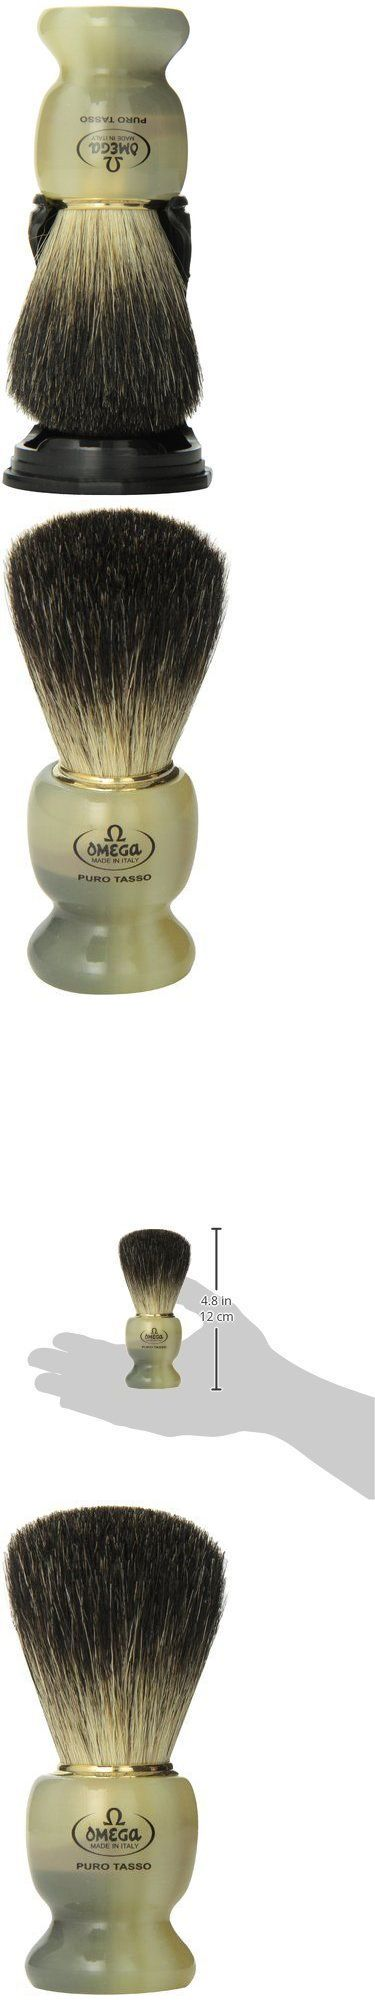 Shaving Brushes and Mugs: Omega 63171 Stripey 100% Pure Badger Shaving Brush With Stand BUY IT NOW ONLY: $36.6